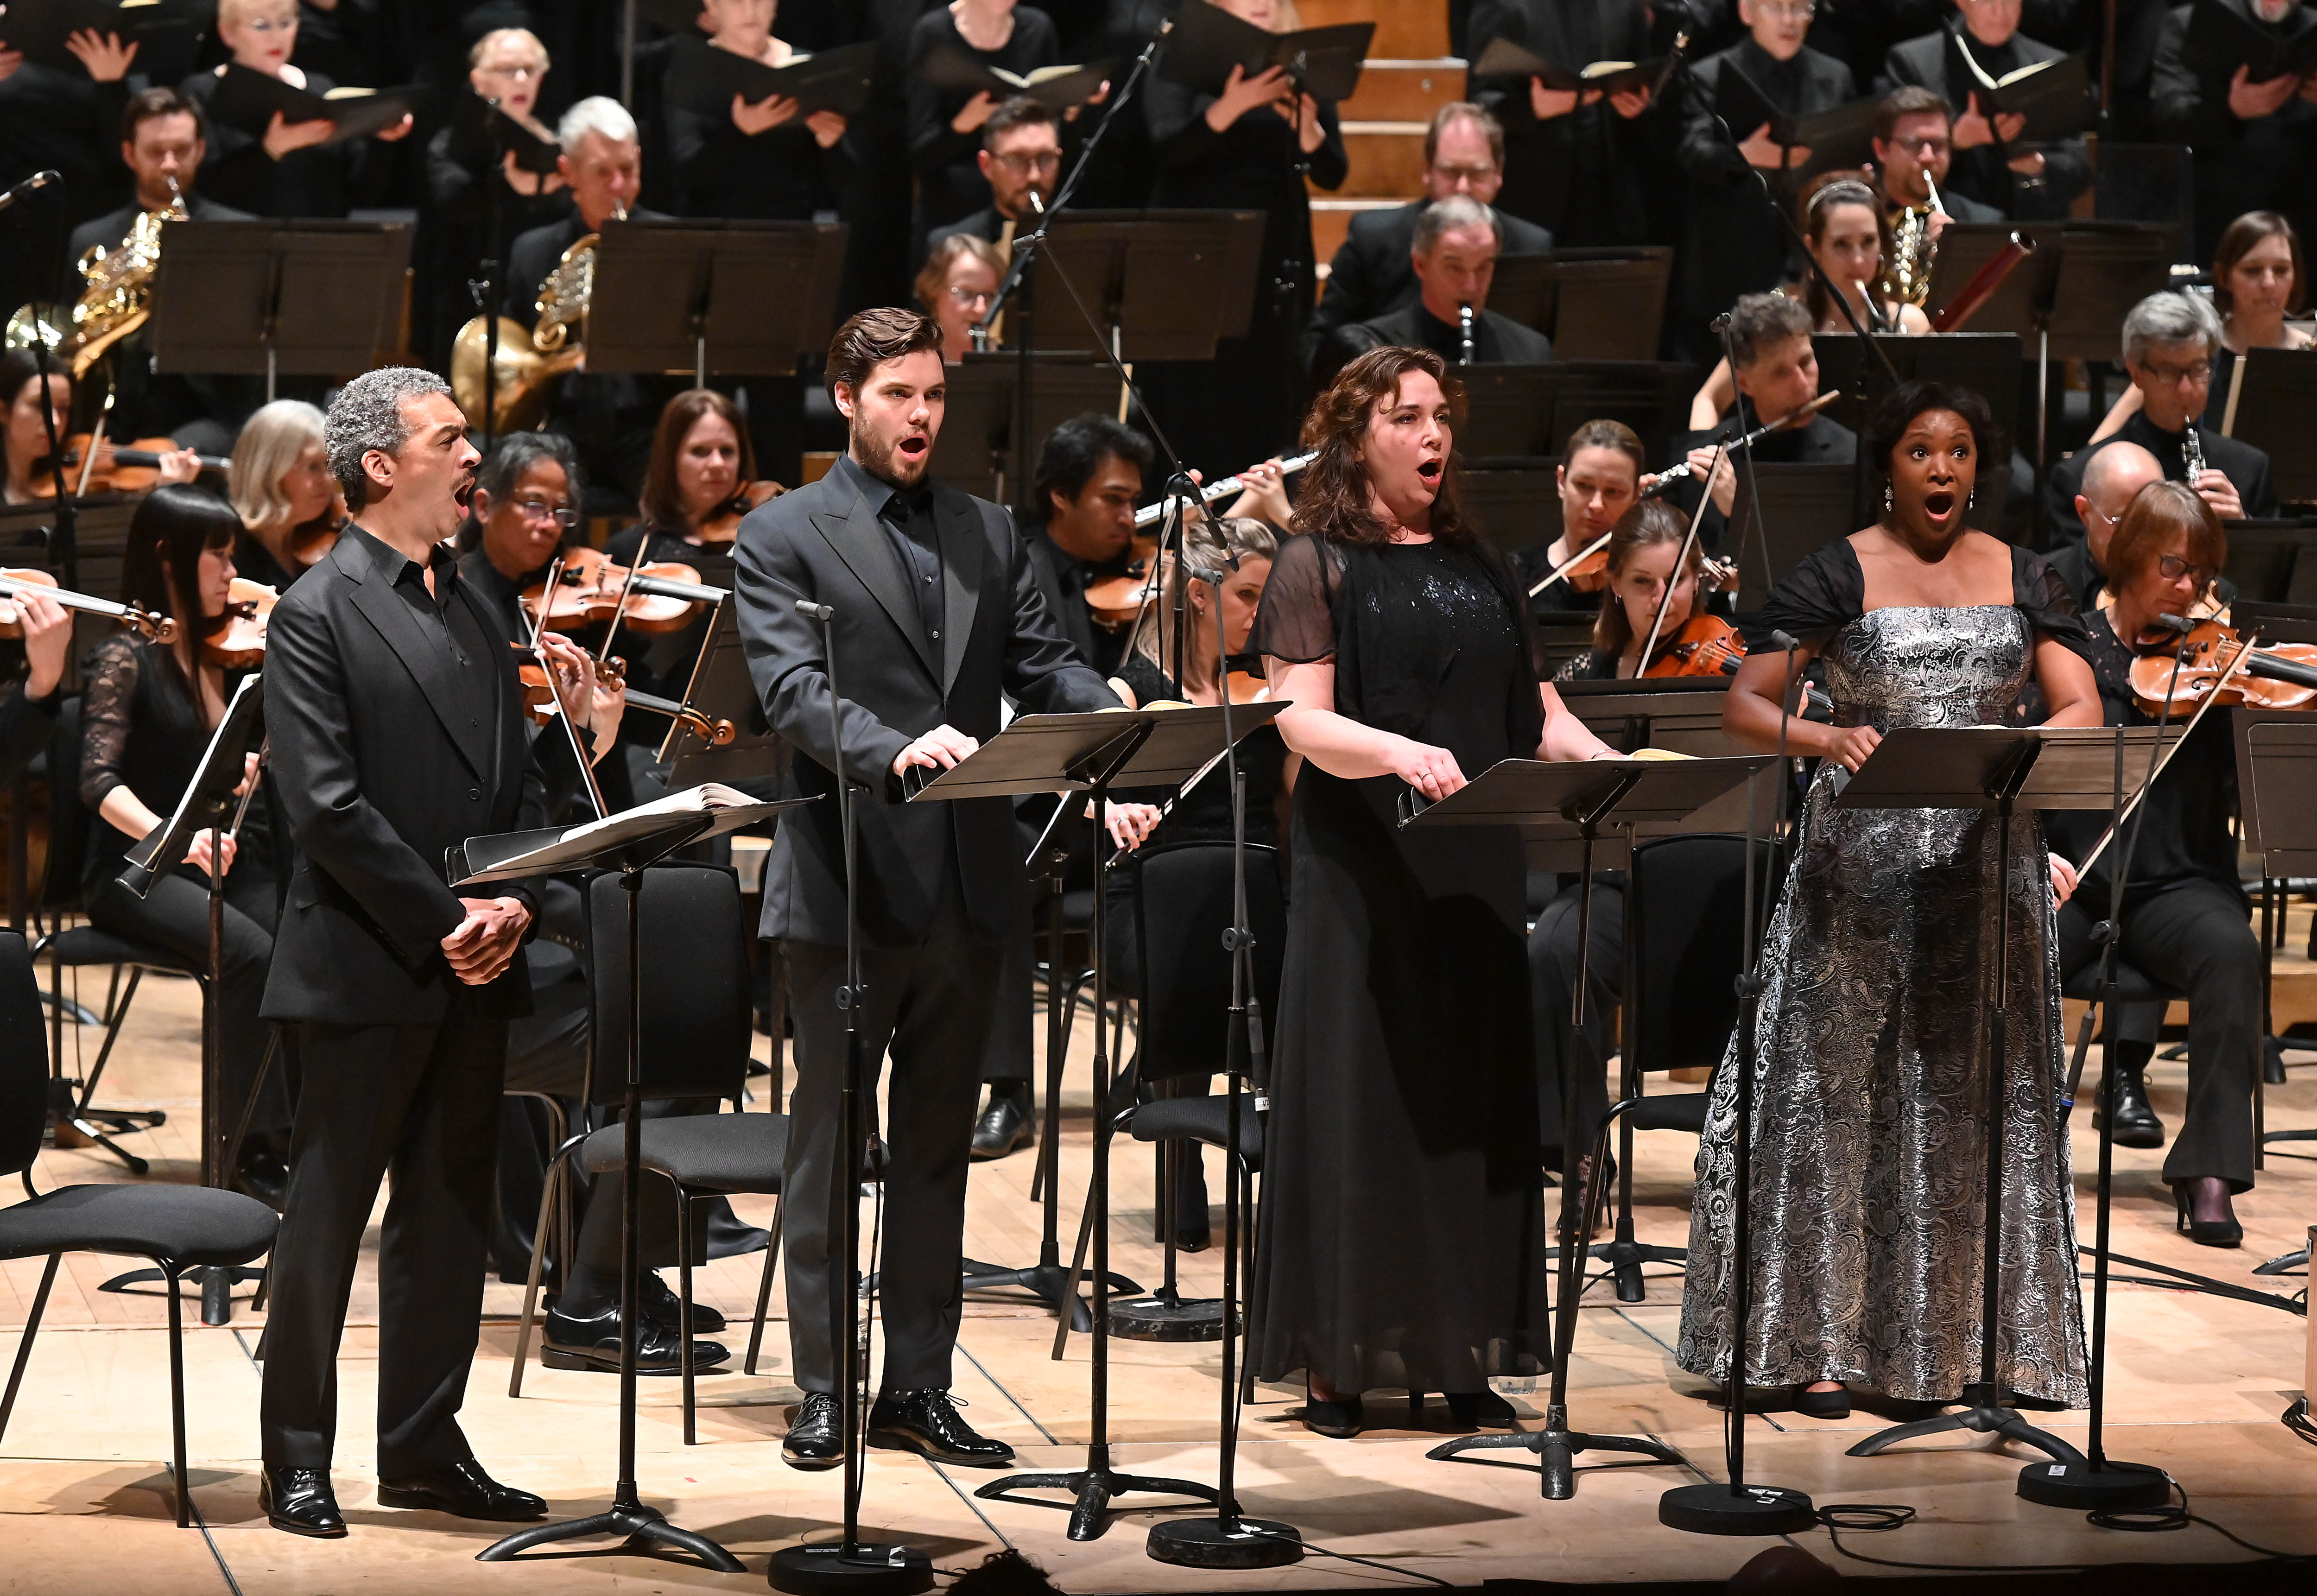 From left to right: Roderick Williams, Thomas Atkins, Christine Rice and Elizabeth Llewelyn in Beethoven's Missa solemnis